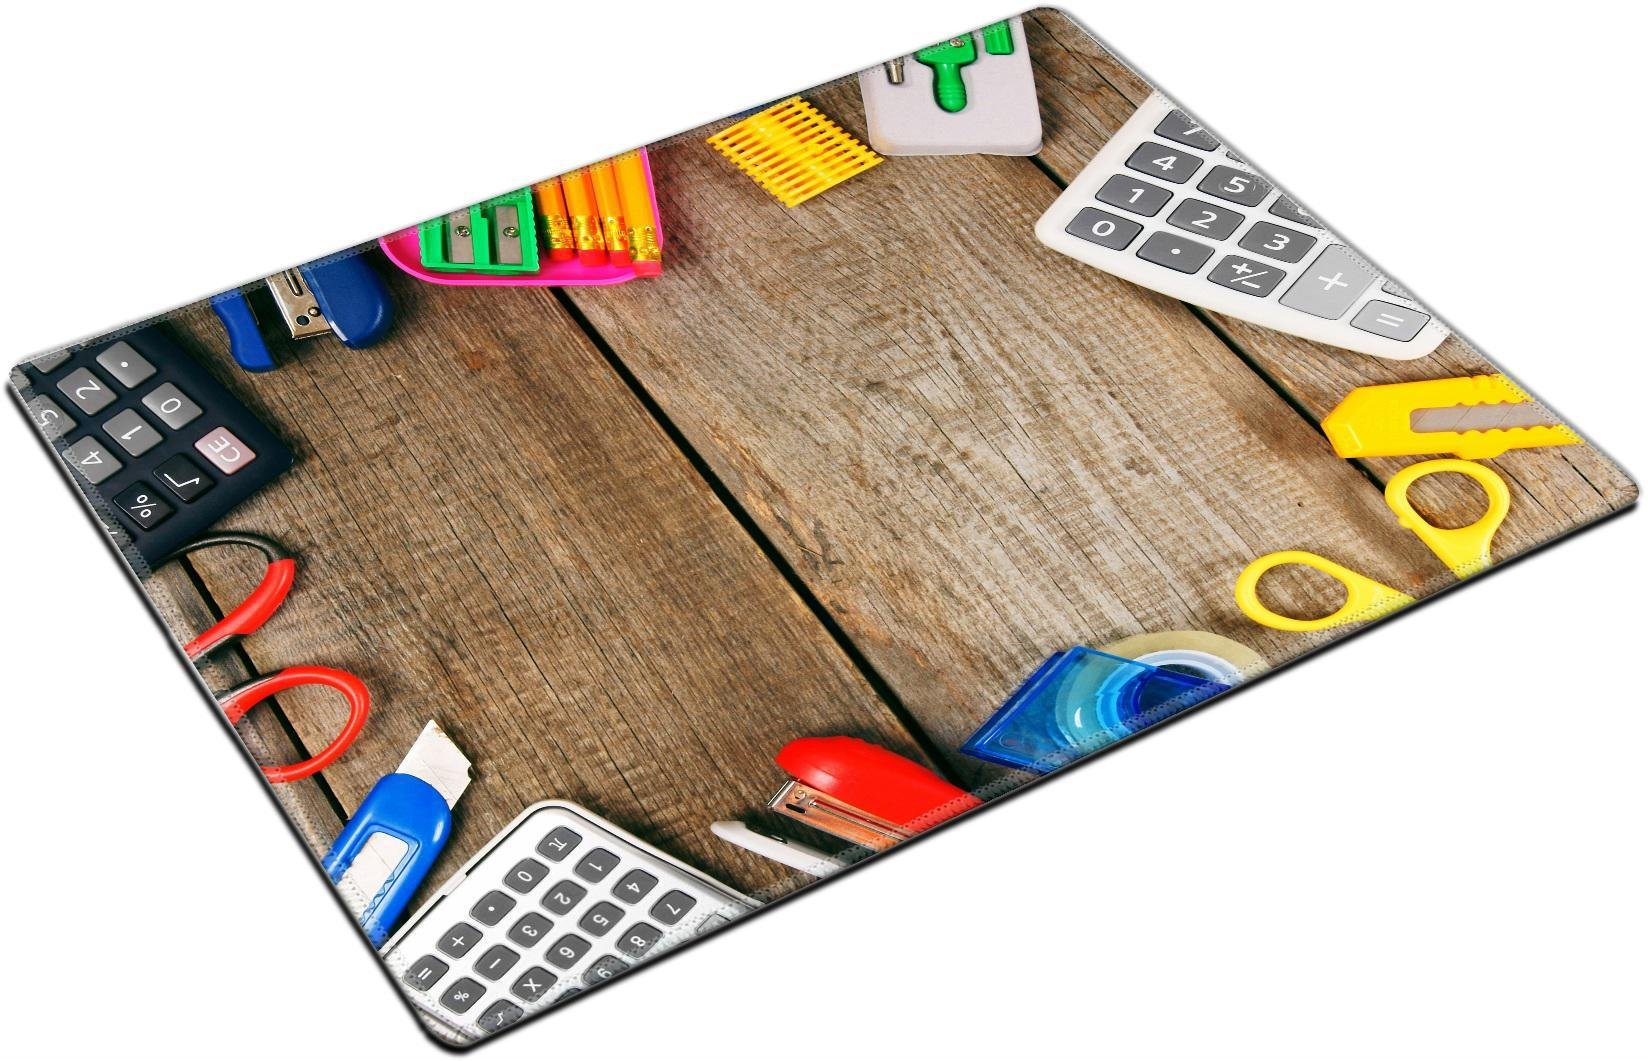 MSD Place Mat Non-Slip Natural Rubber Desk Pads Design: 30873280 Back to School School Tools Around